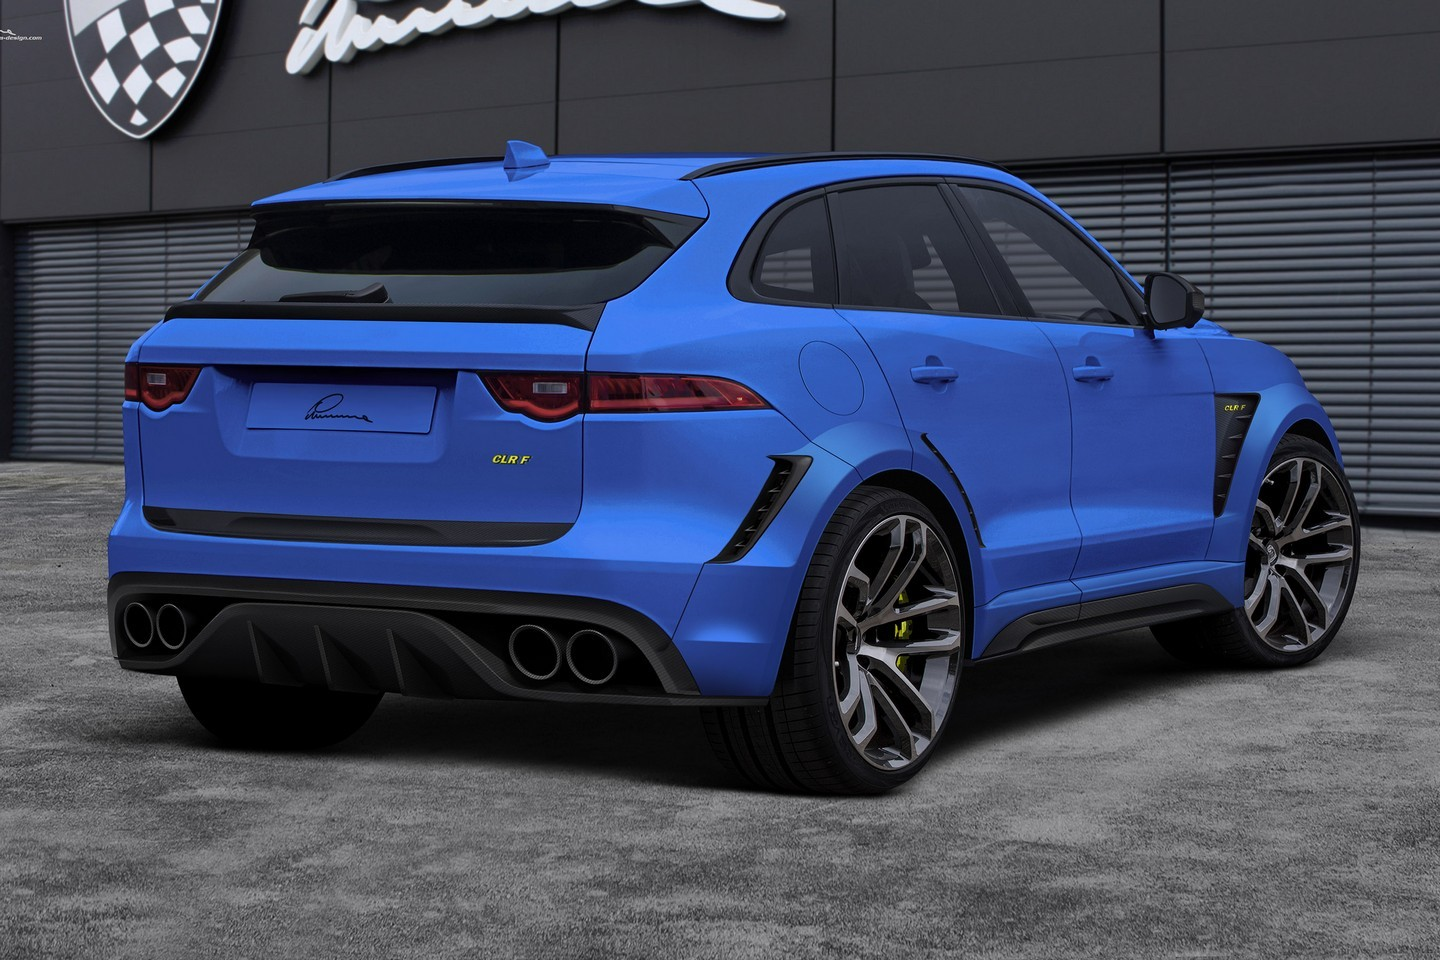 jaguar f pace gets widebody kit and 24 inch wheels from lumma autoevolution. Black Bedroom Furniture Sets. Home Design Ideas